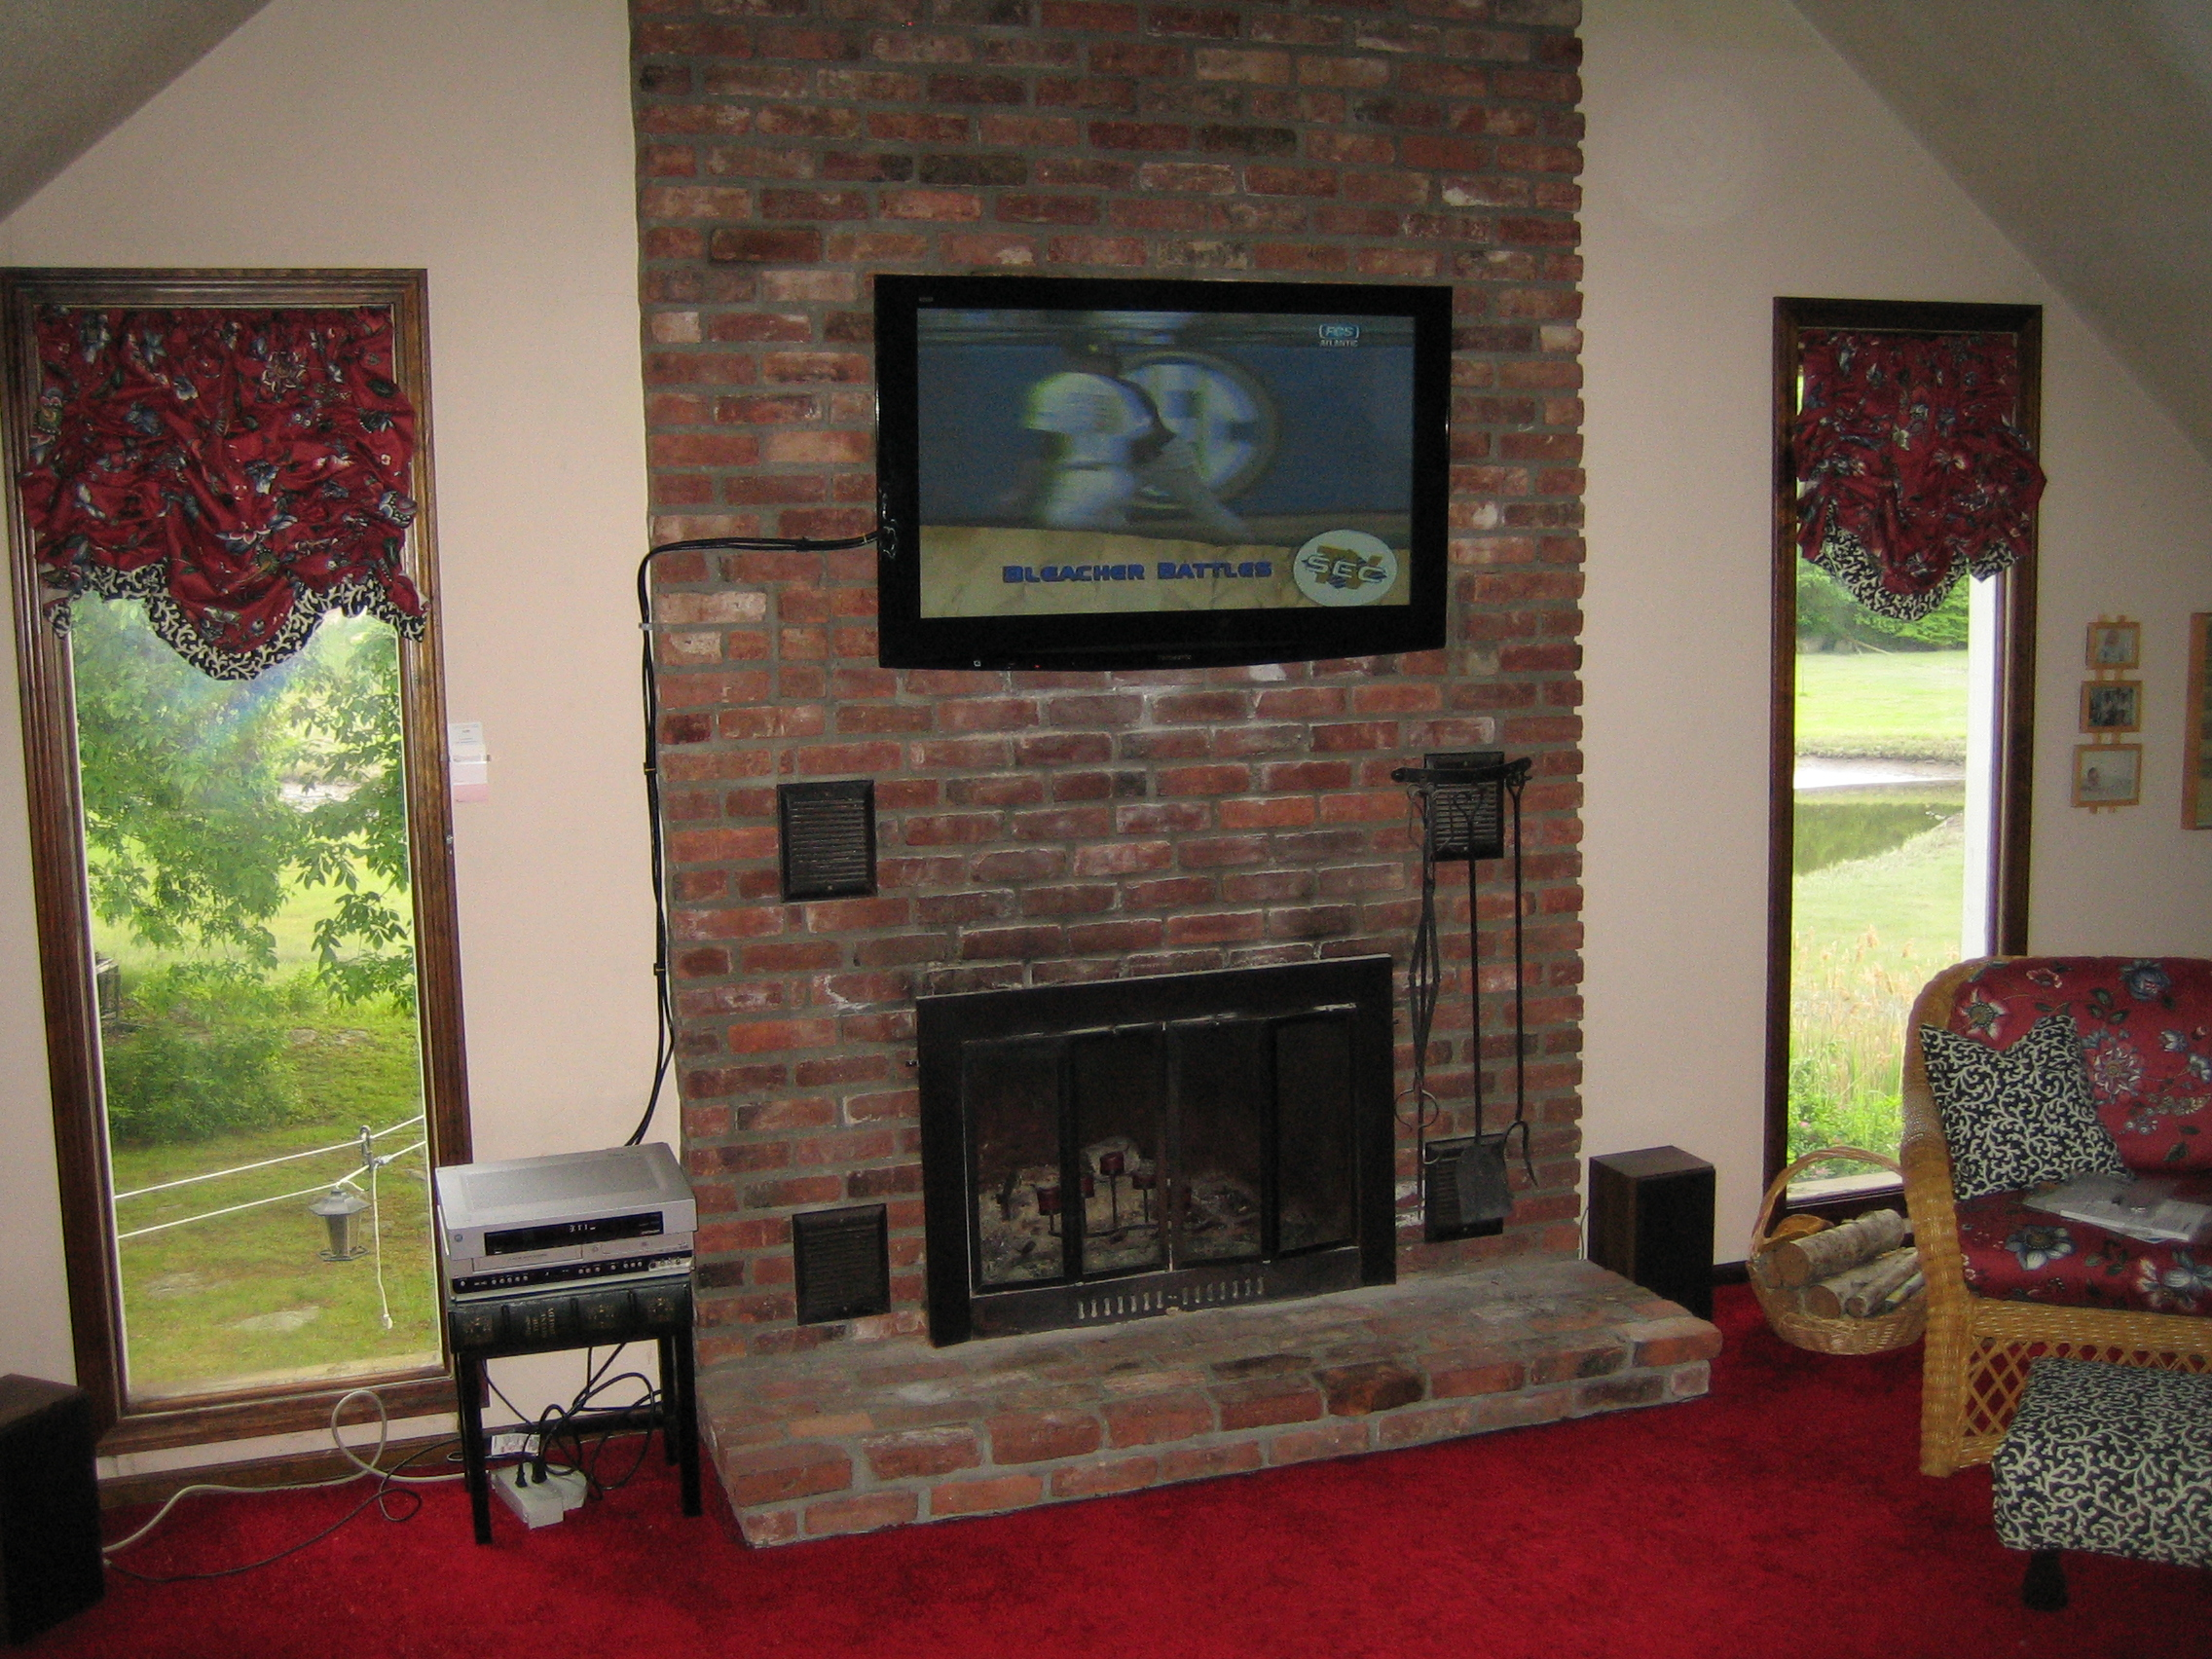 durham ct mount tv above fireplace home theater installation. Black Bedroom Furniture Sets. Home Design Ideas